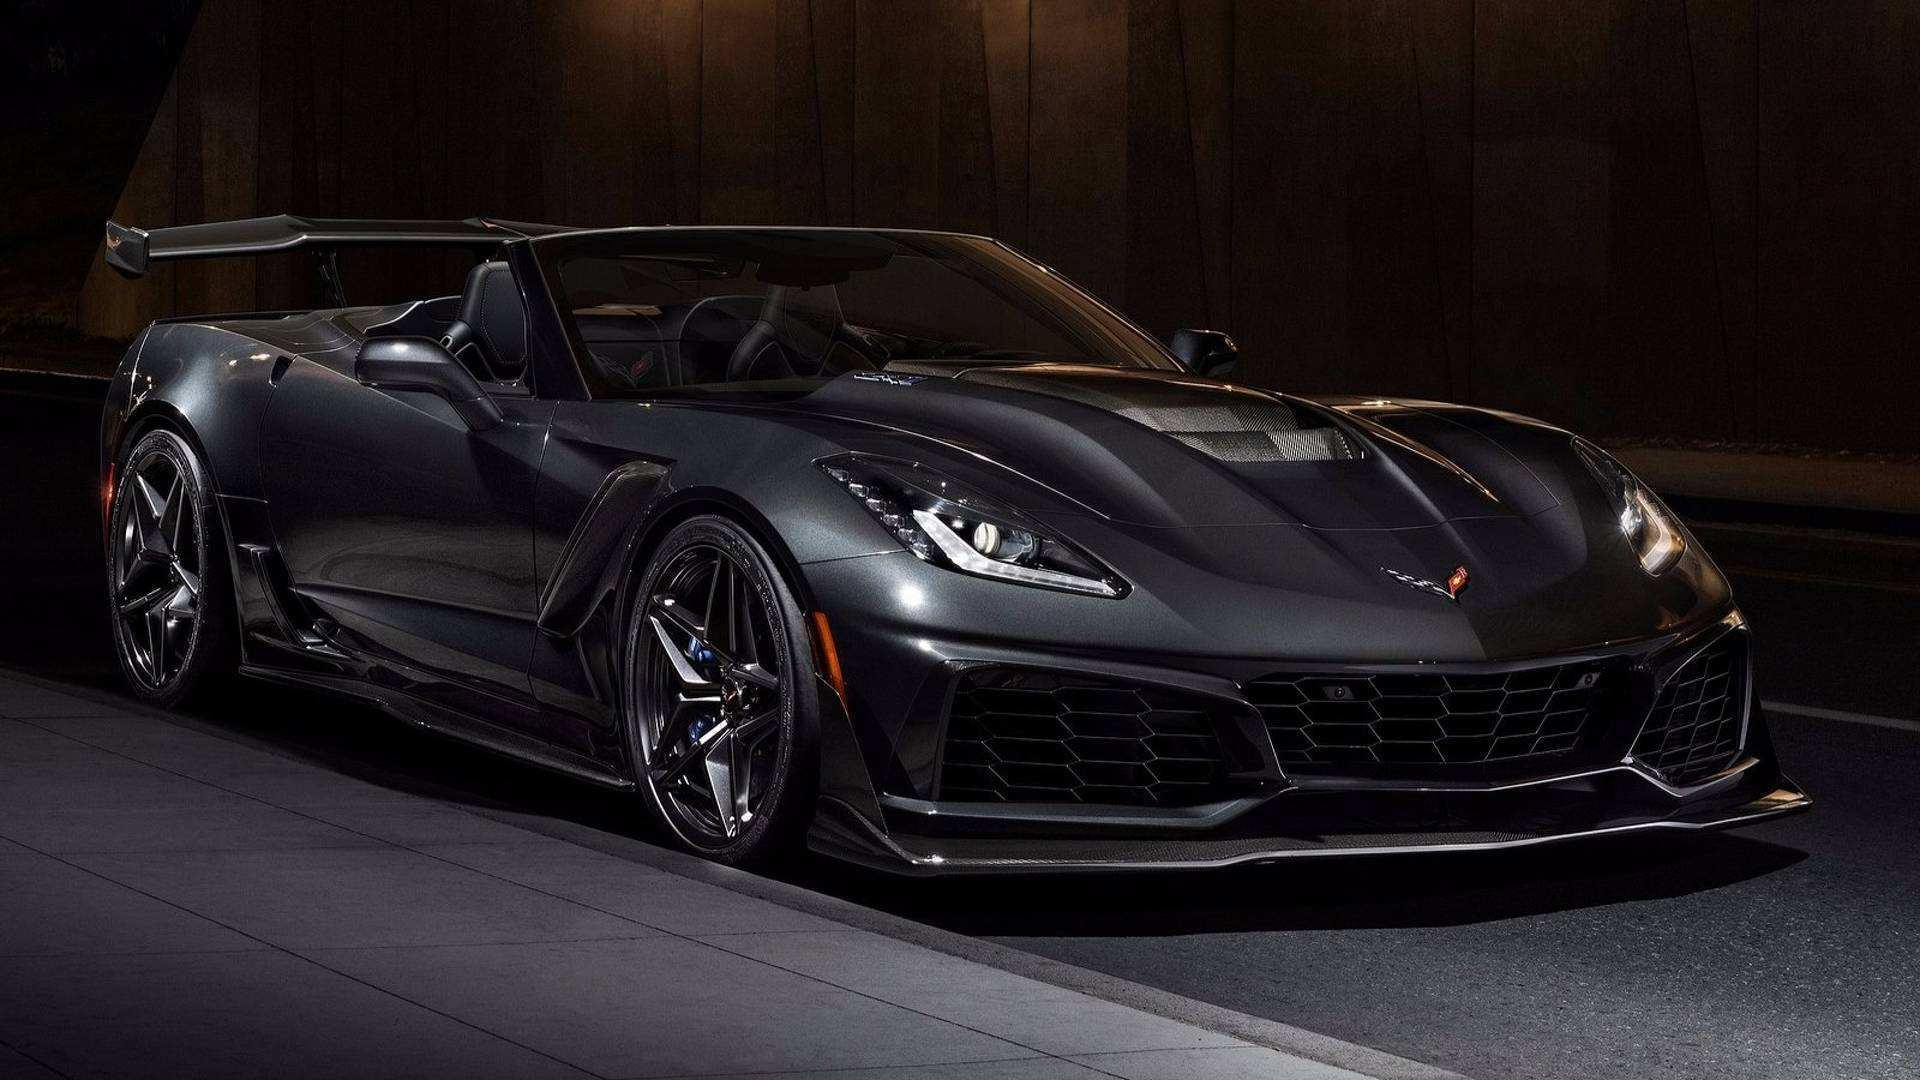 21 All New 2019 Chevrolet Corvette Zr1 Price Photos for 2019 Chevrolet Corvette Zr1 Price